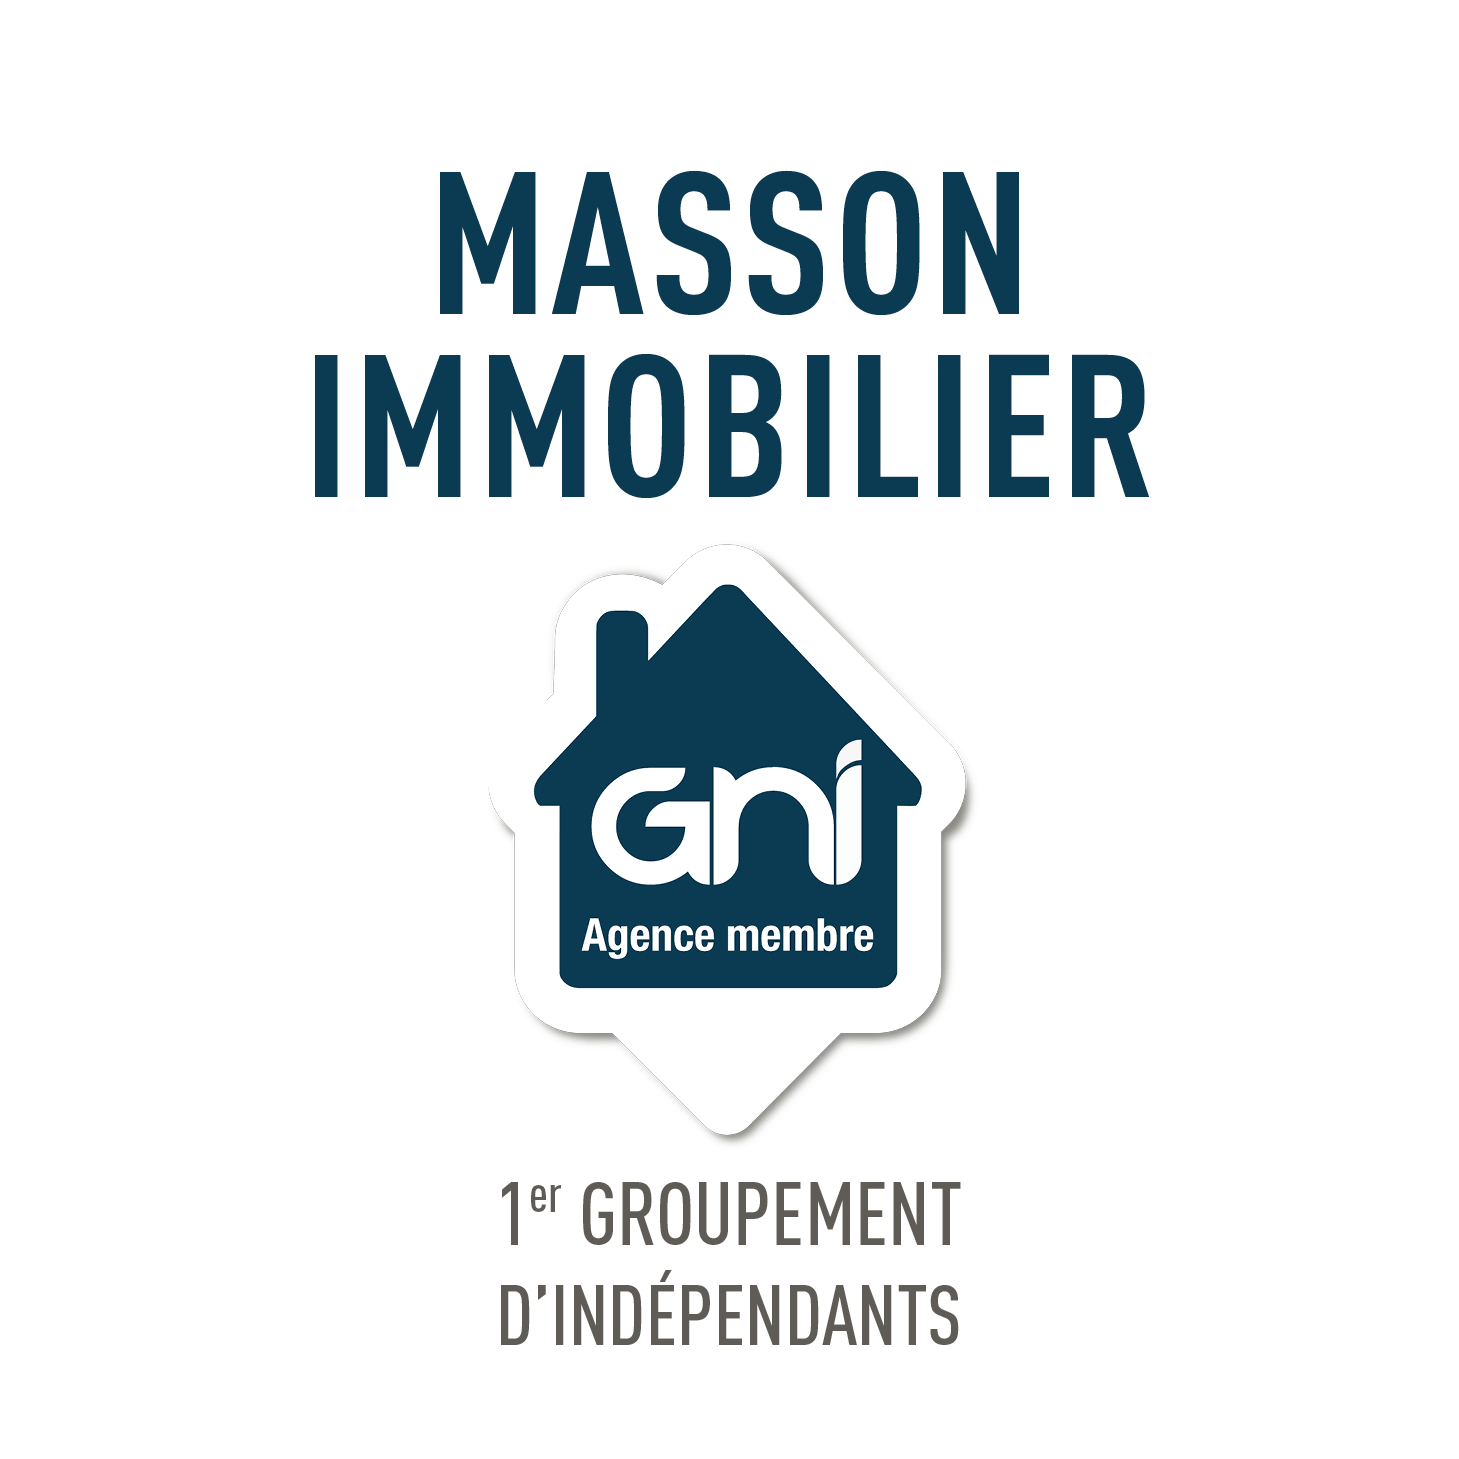 GNIMMO - MASSON IMMOBILIER L'AGENCE